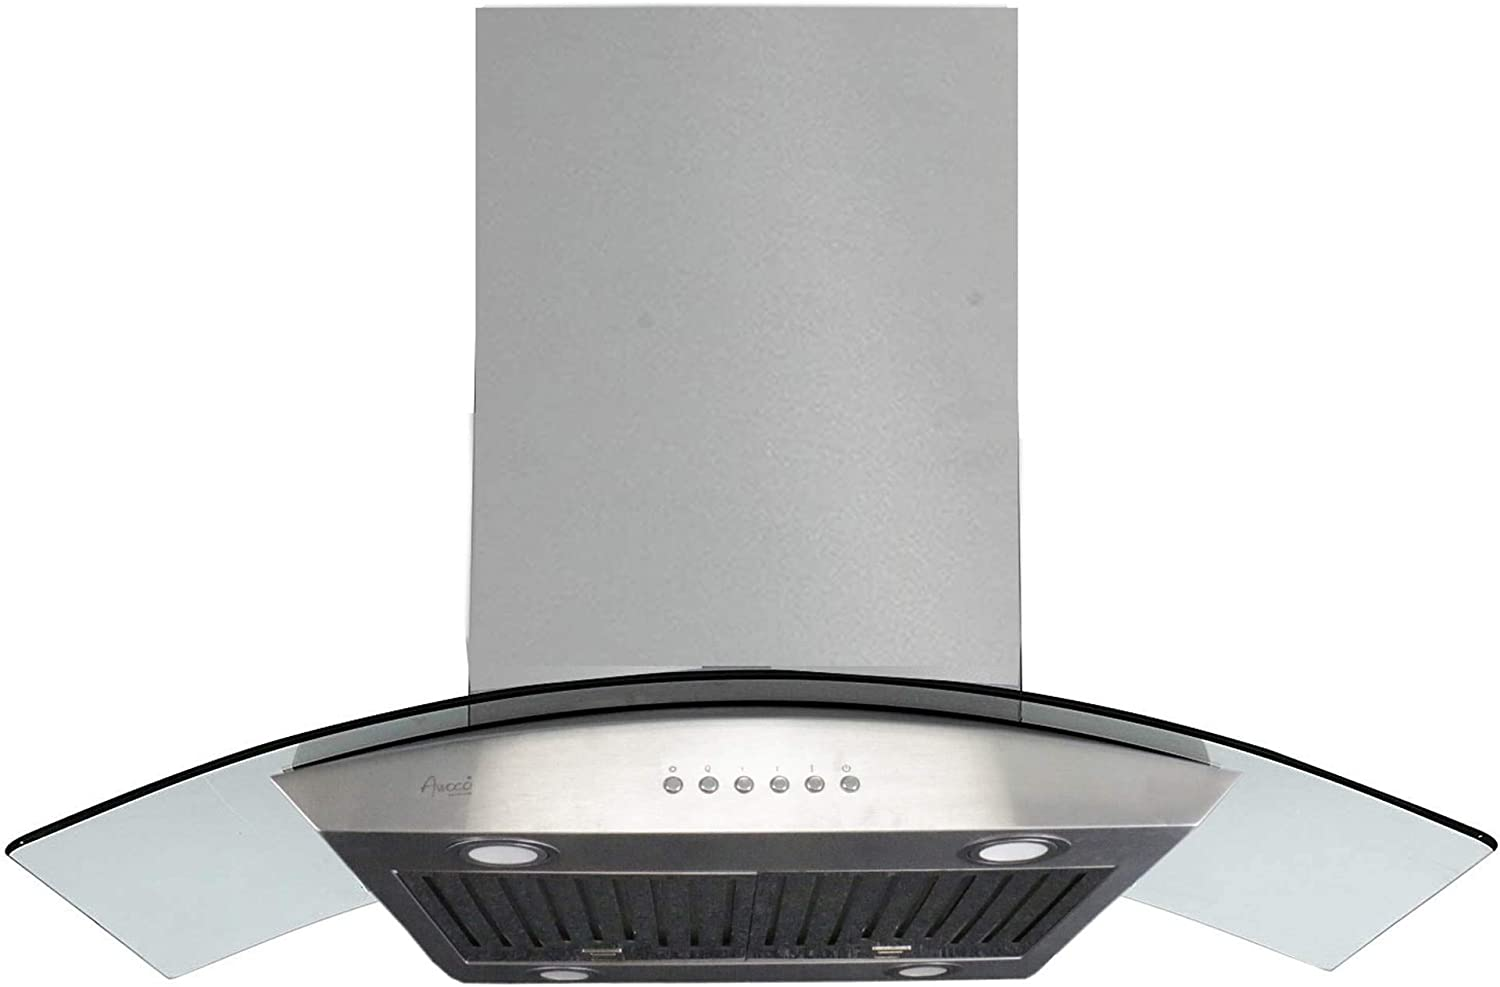 """Baffle Filter Awoco 36 RH-ISG 6/"""" Round Vent 1mm Thick Stainless Steel Island Mounted 4 Speeds 900CFM Range Hood with 4 LED Lights Soft Touch Electronic Control Panel"""